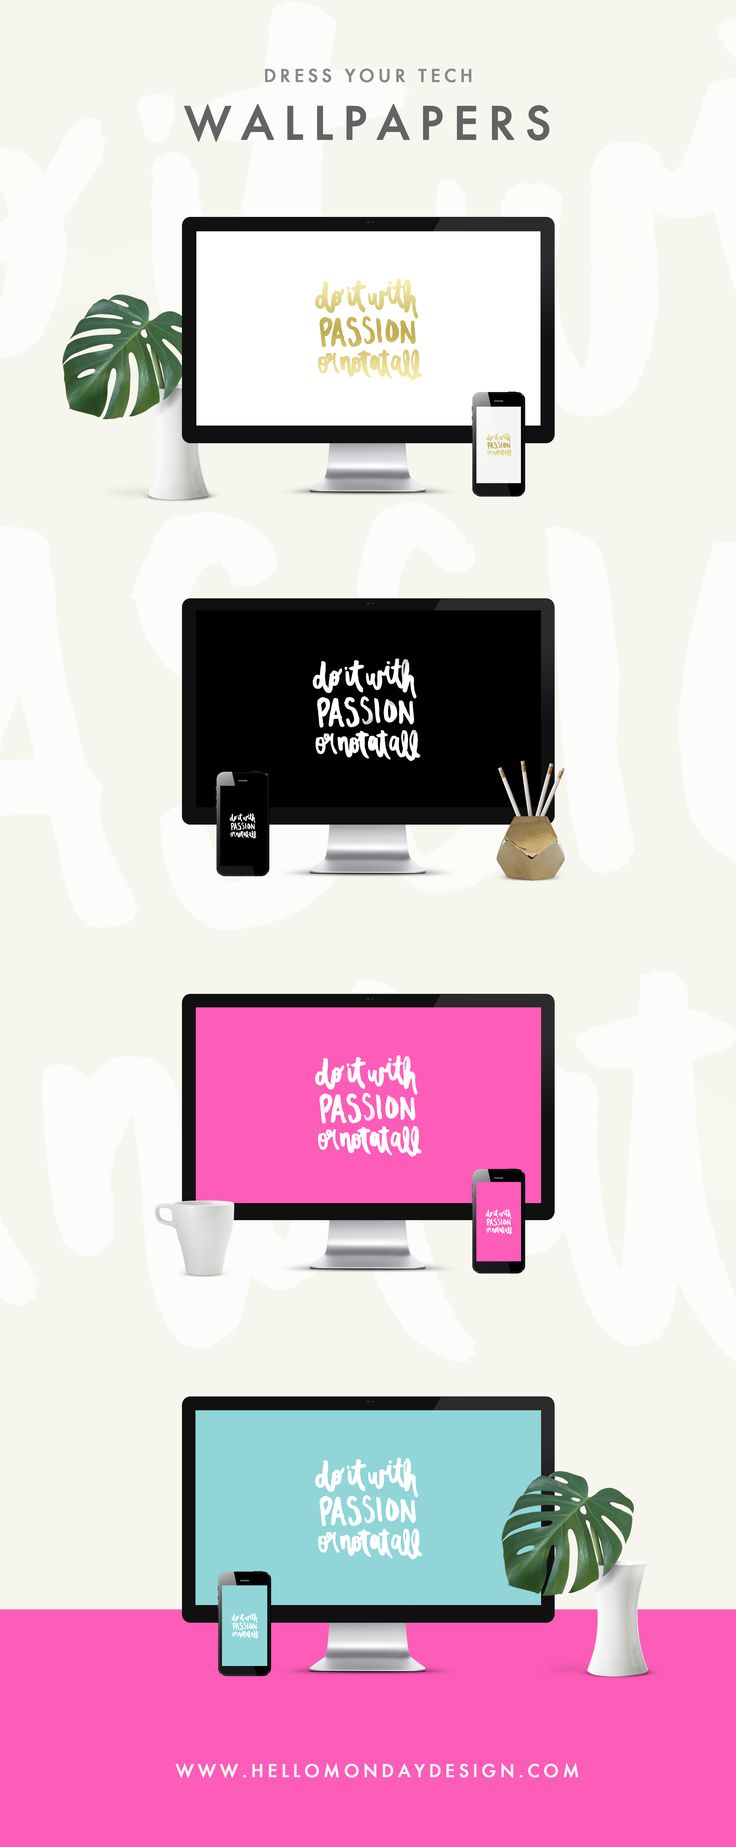 Free Wallpaper Downloads | Instant Download Wallpapers | Girl Boss | Boss Babe | 2017 desktop wallpapers | girl boss wallpapers | 2017 goals | 2017 resolutions | Inspirational Quote | Watercolor lettering | Dress Your Tech | Free Background | Hello Monday Design